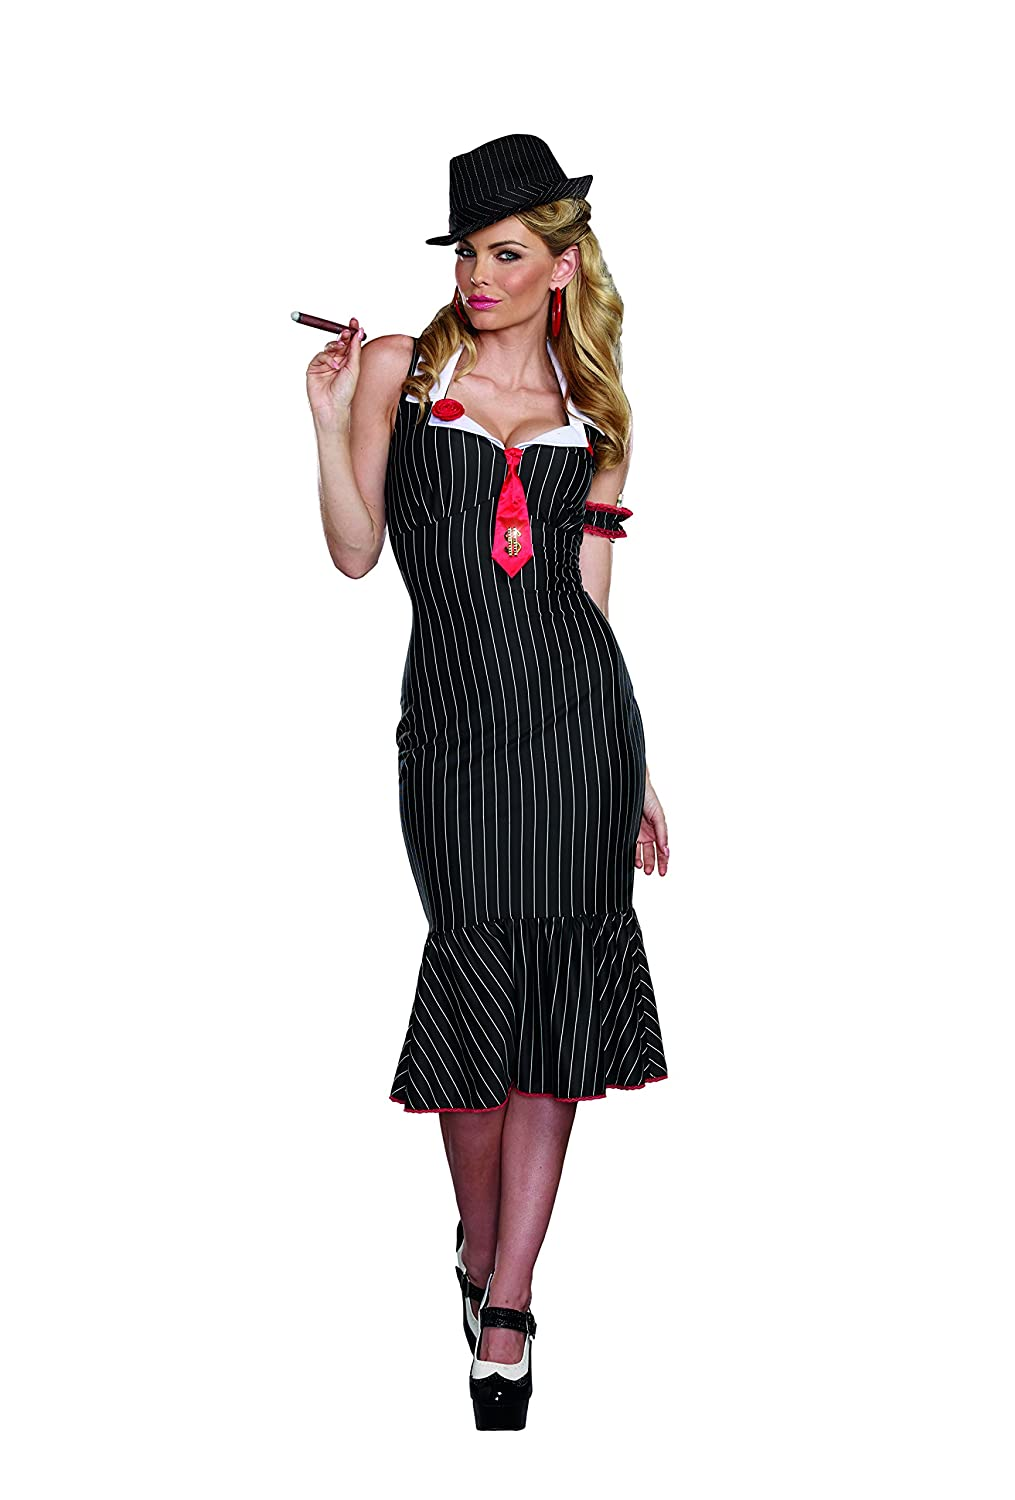 1920s Costumes: Flapper, Great Gatsby, Gangster Girl Dreamgirl Womens Deadly Dames Pinstripe Gangster Costume $67.00 AT vintagedancer.com